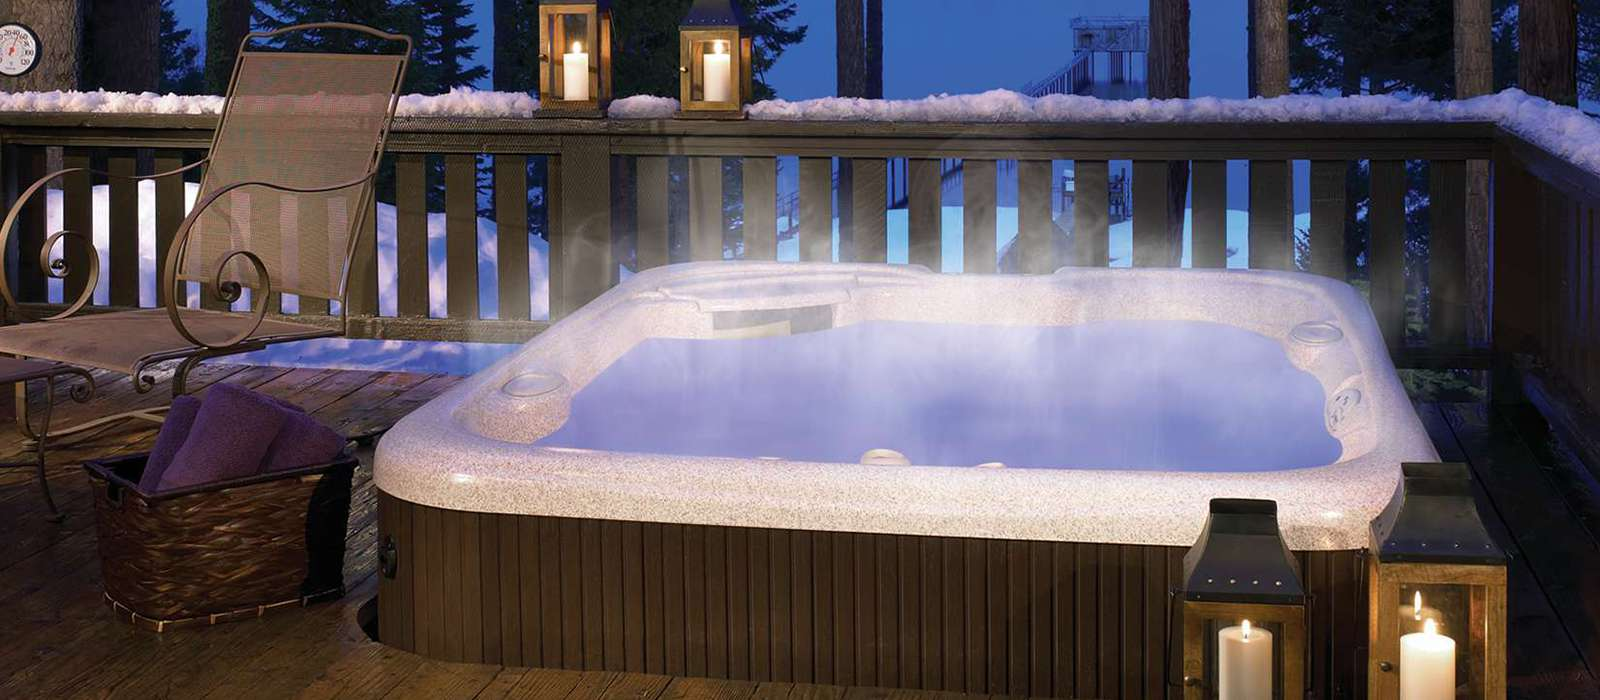 The Prodigy 5 person hot tub features the patented Soothing Stream® and JetStream® jets for an invigorating lower back massage. With personalized hydromassage options and the Luminescence® LED lighting system, this spa provides the perfect space to totally relax.